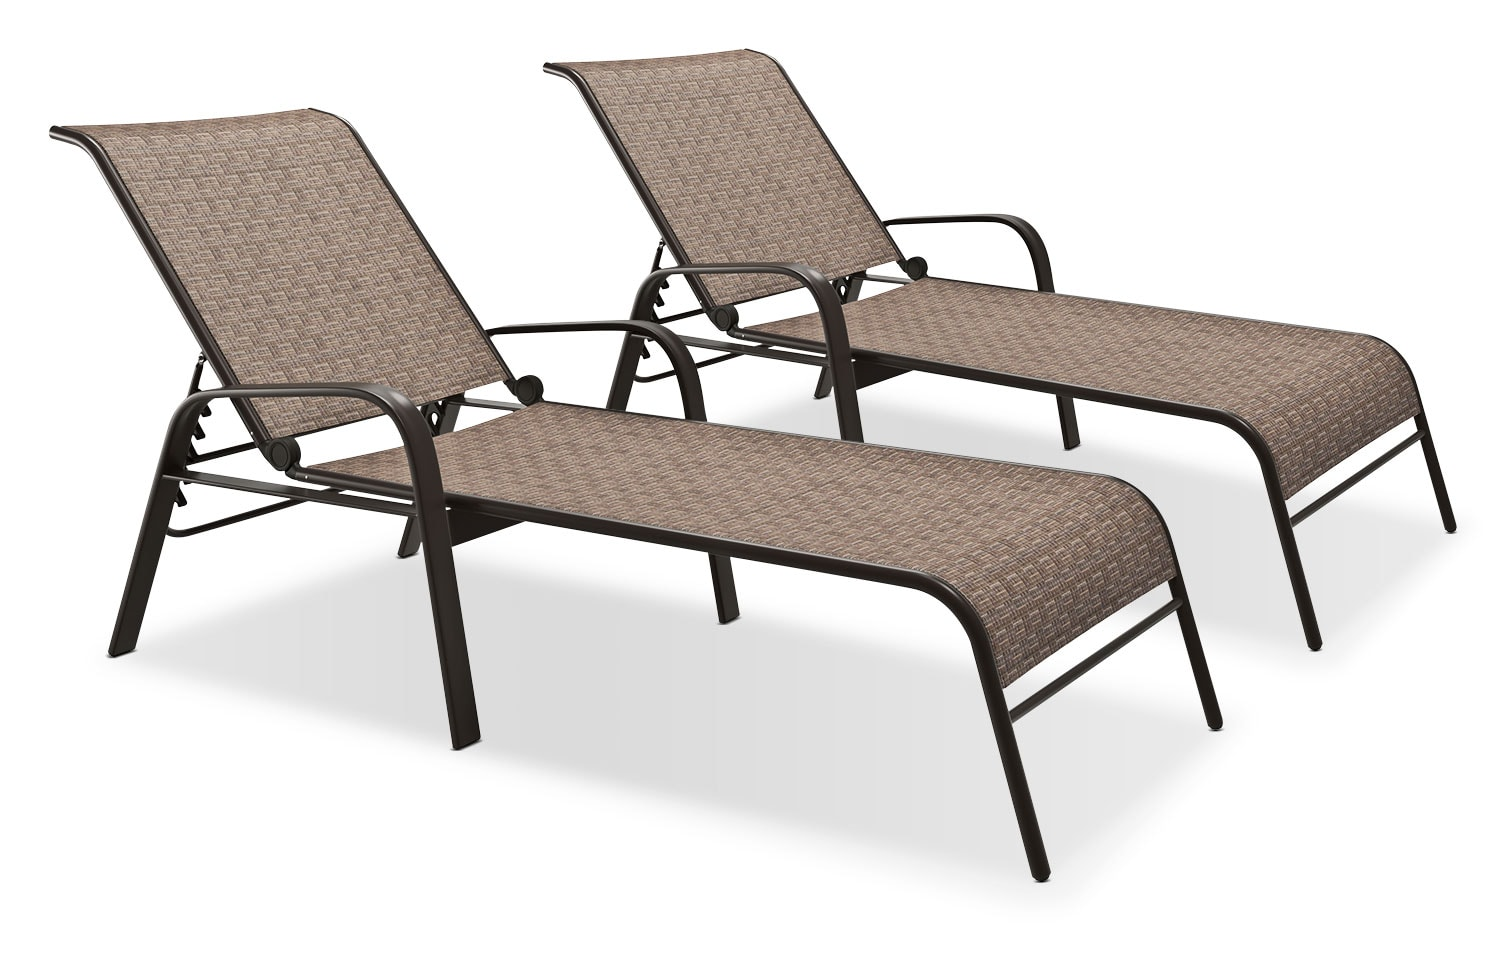 Outdoor Furniture - Reclining Loungers, Set of 2 – Brown